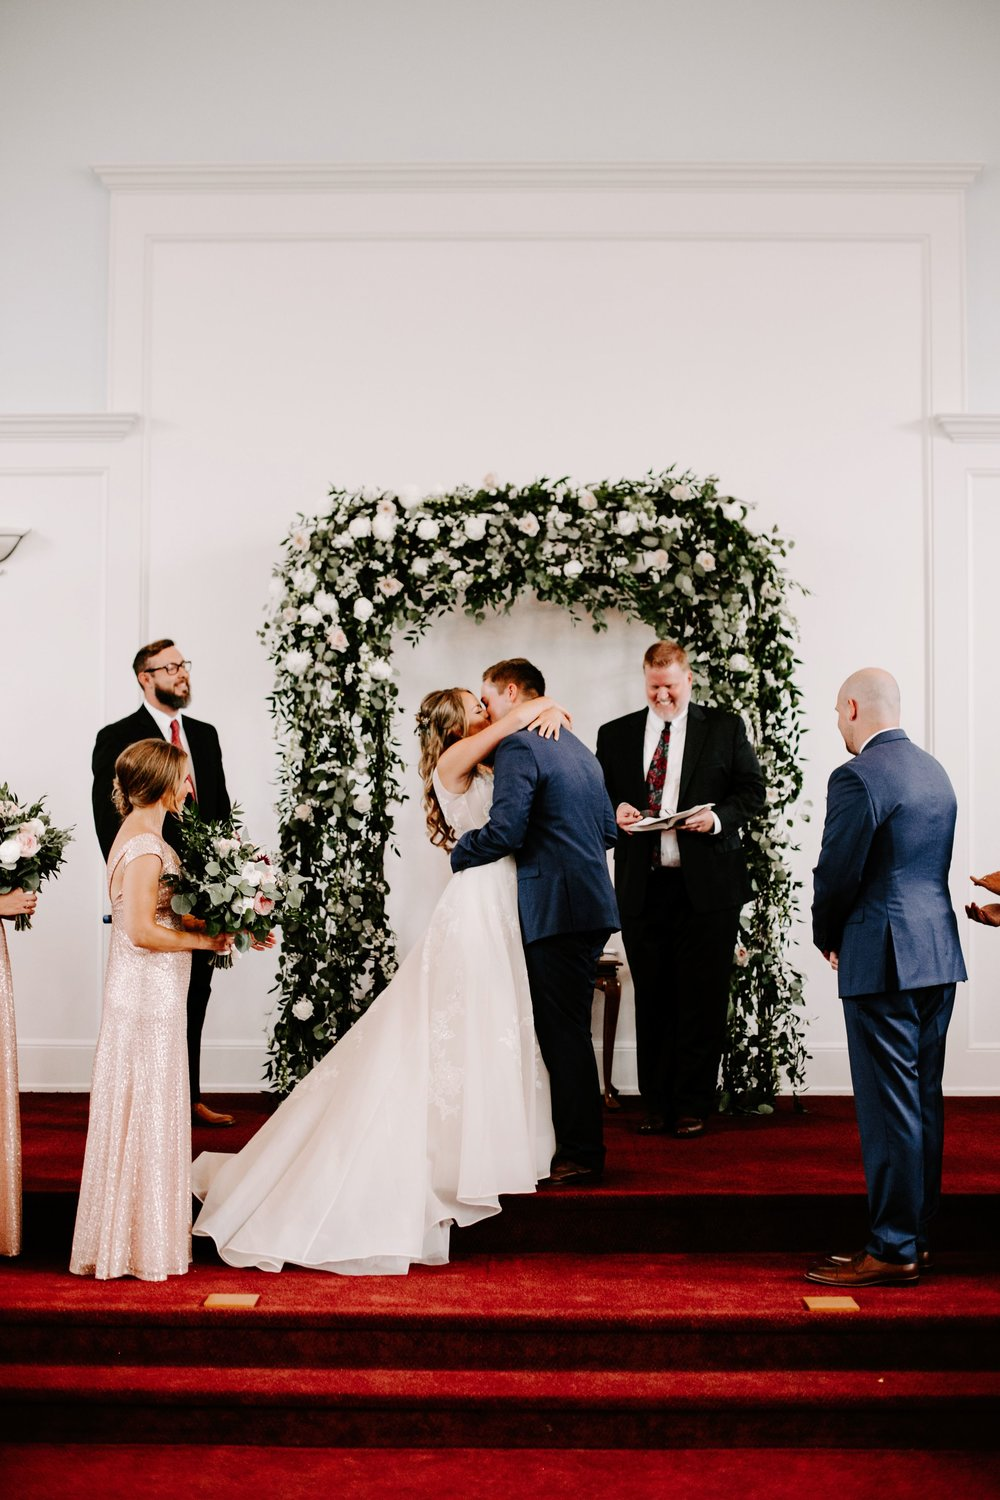 Katy and Michael Wedding at The Ritz Charles Garden Pavillion in Indianapolis Indiana by Emily Elyse Wehner Photography LLC-611.jpg